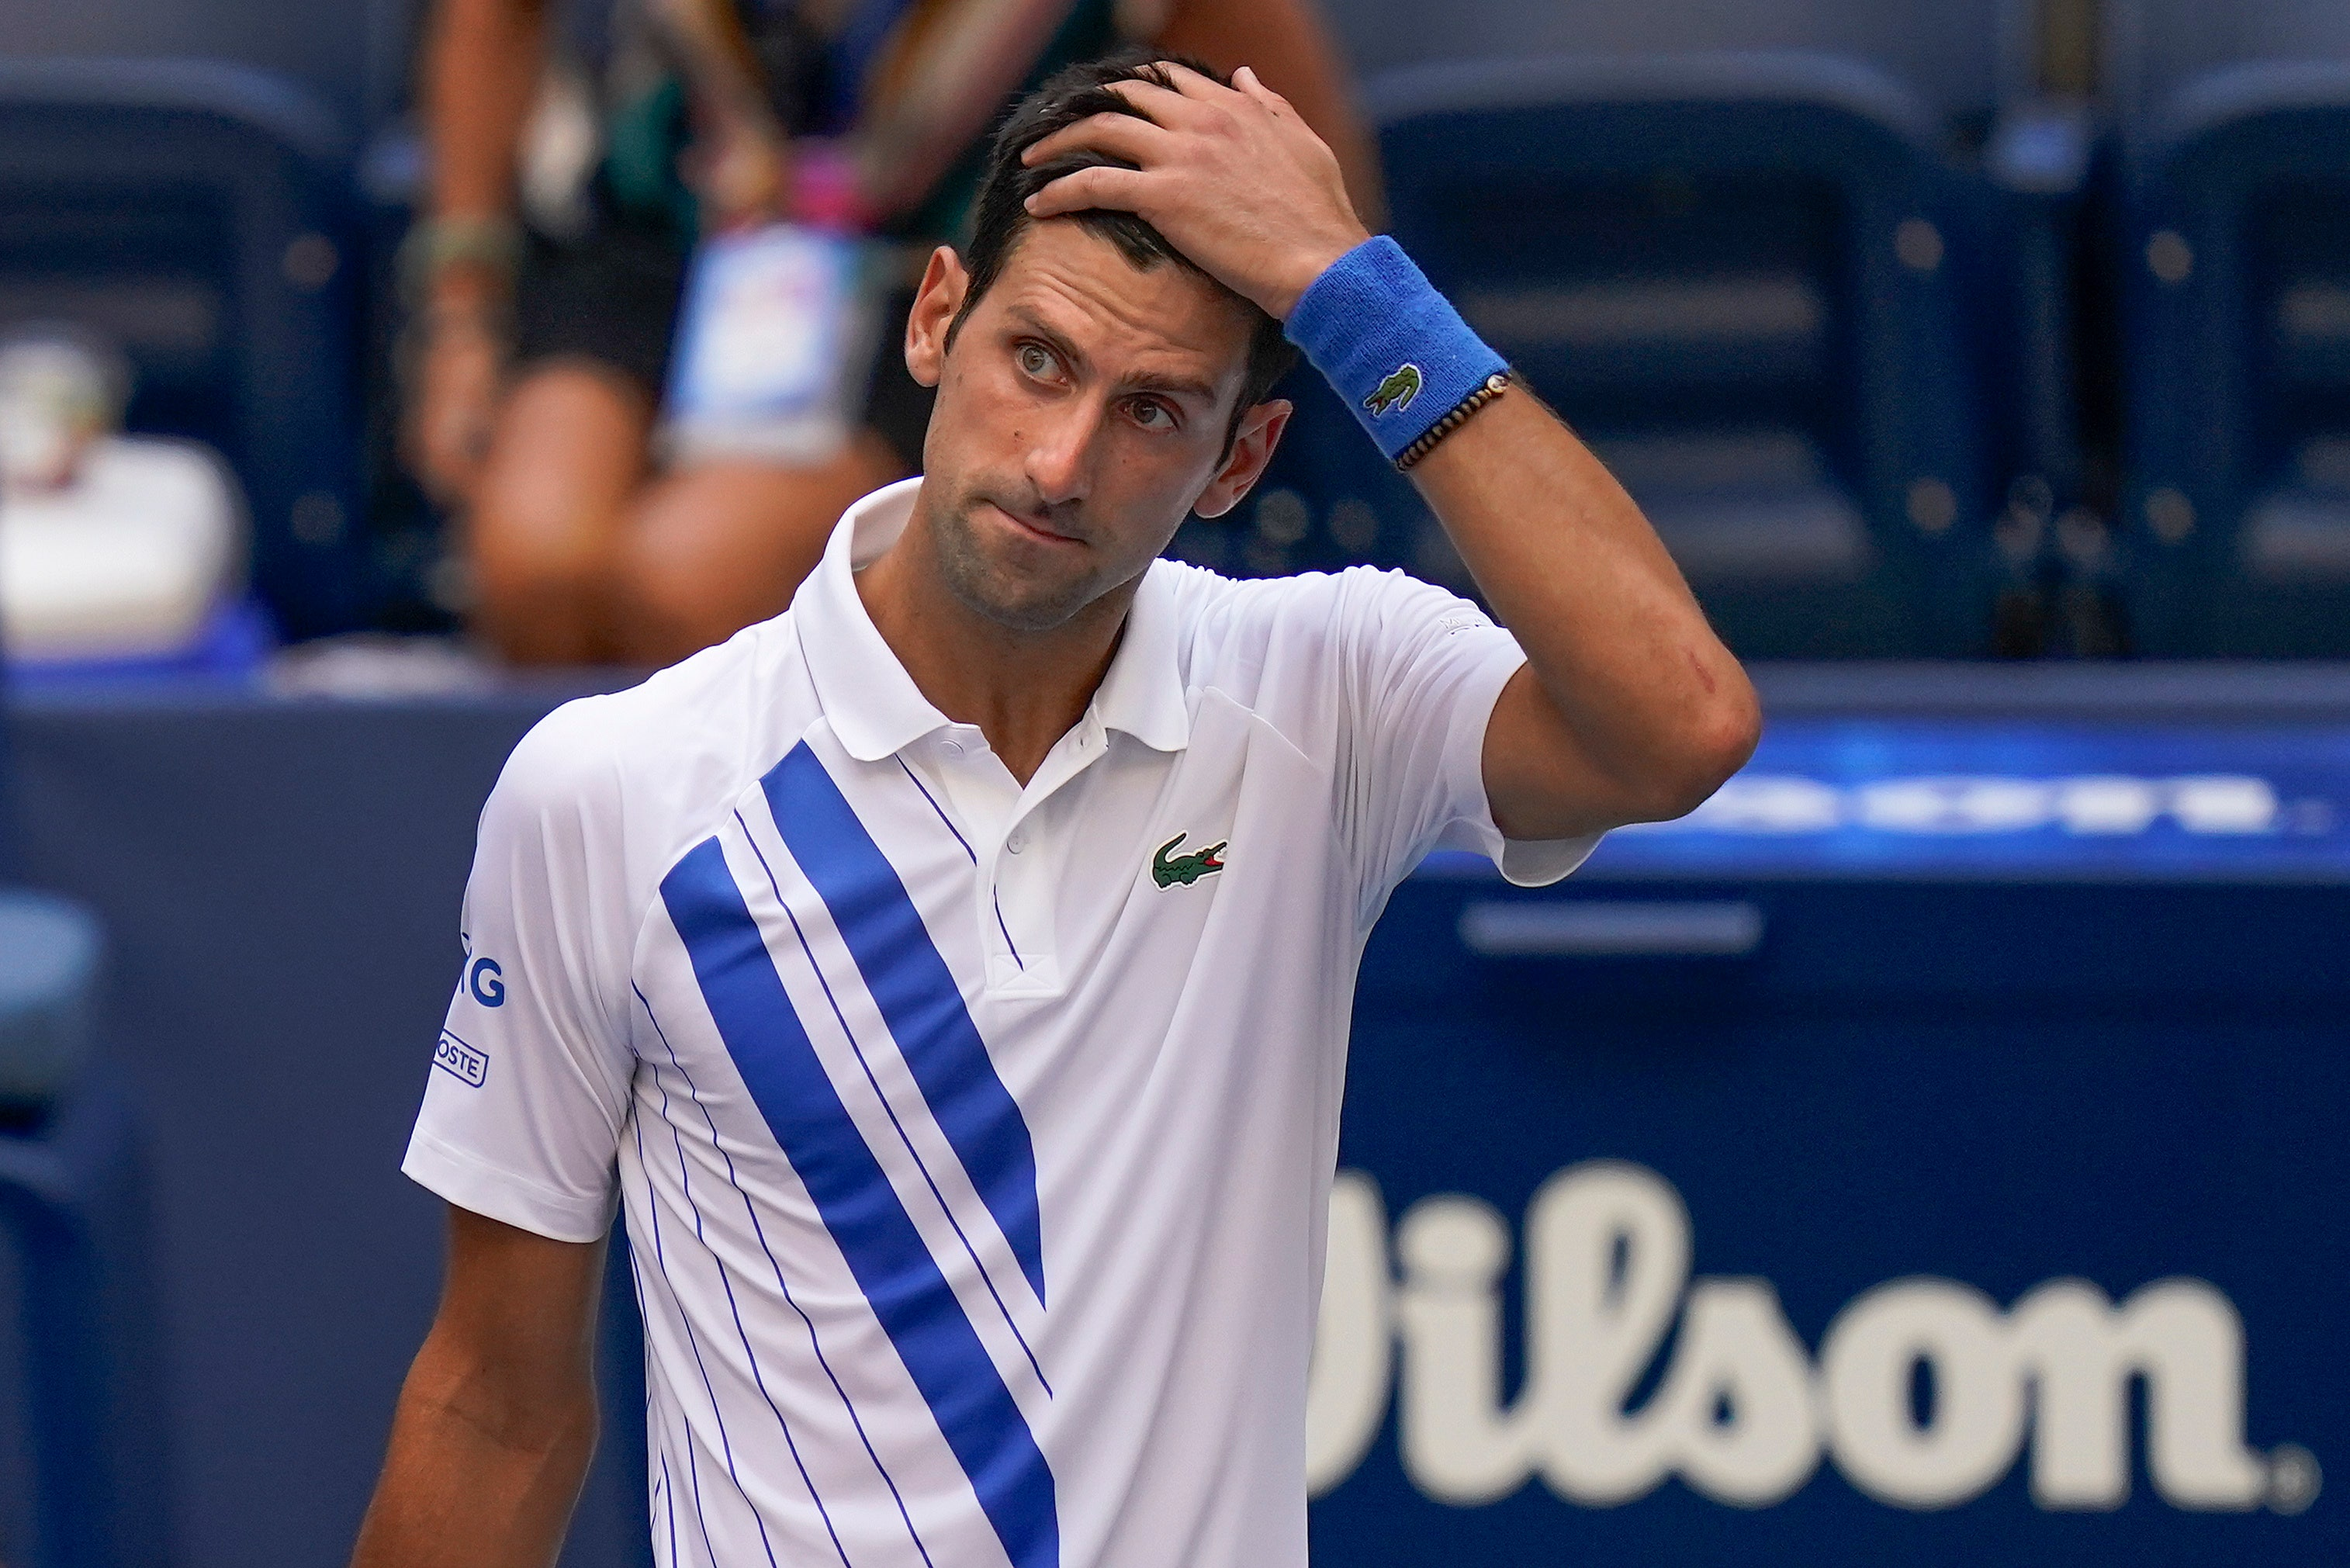 Novak Djokovic's US Open meltdown costs millions in prize money with more potential fines ahead – Fox Business